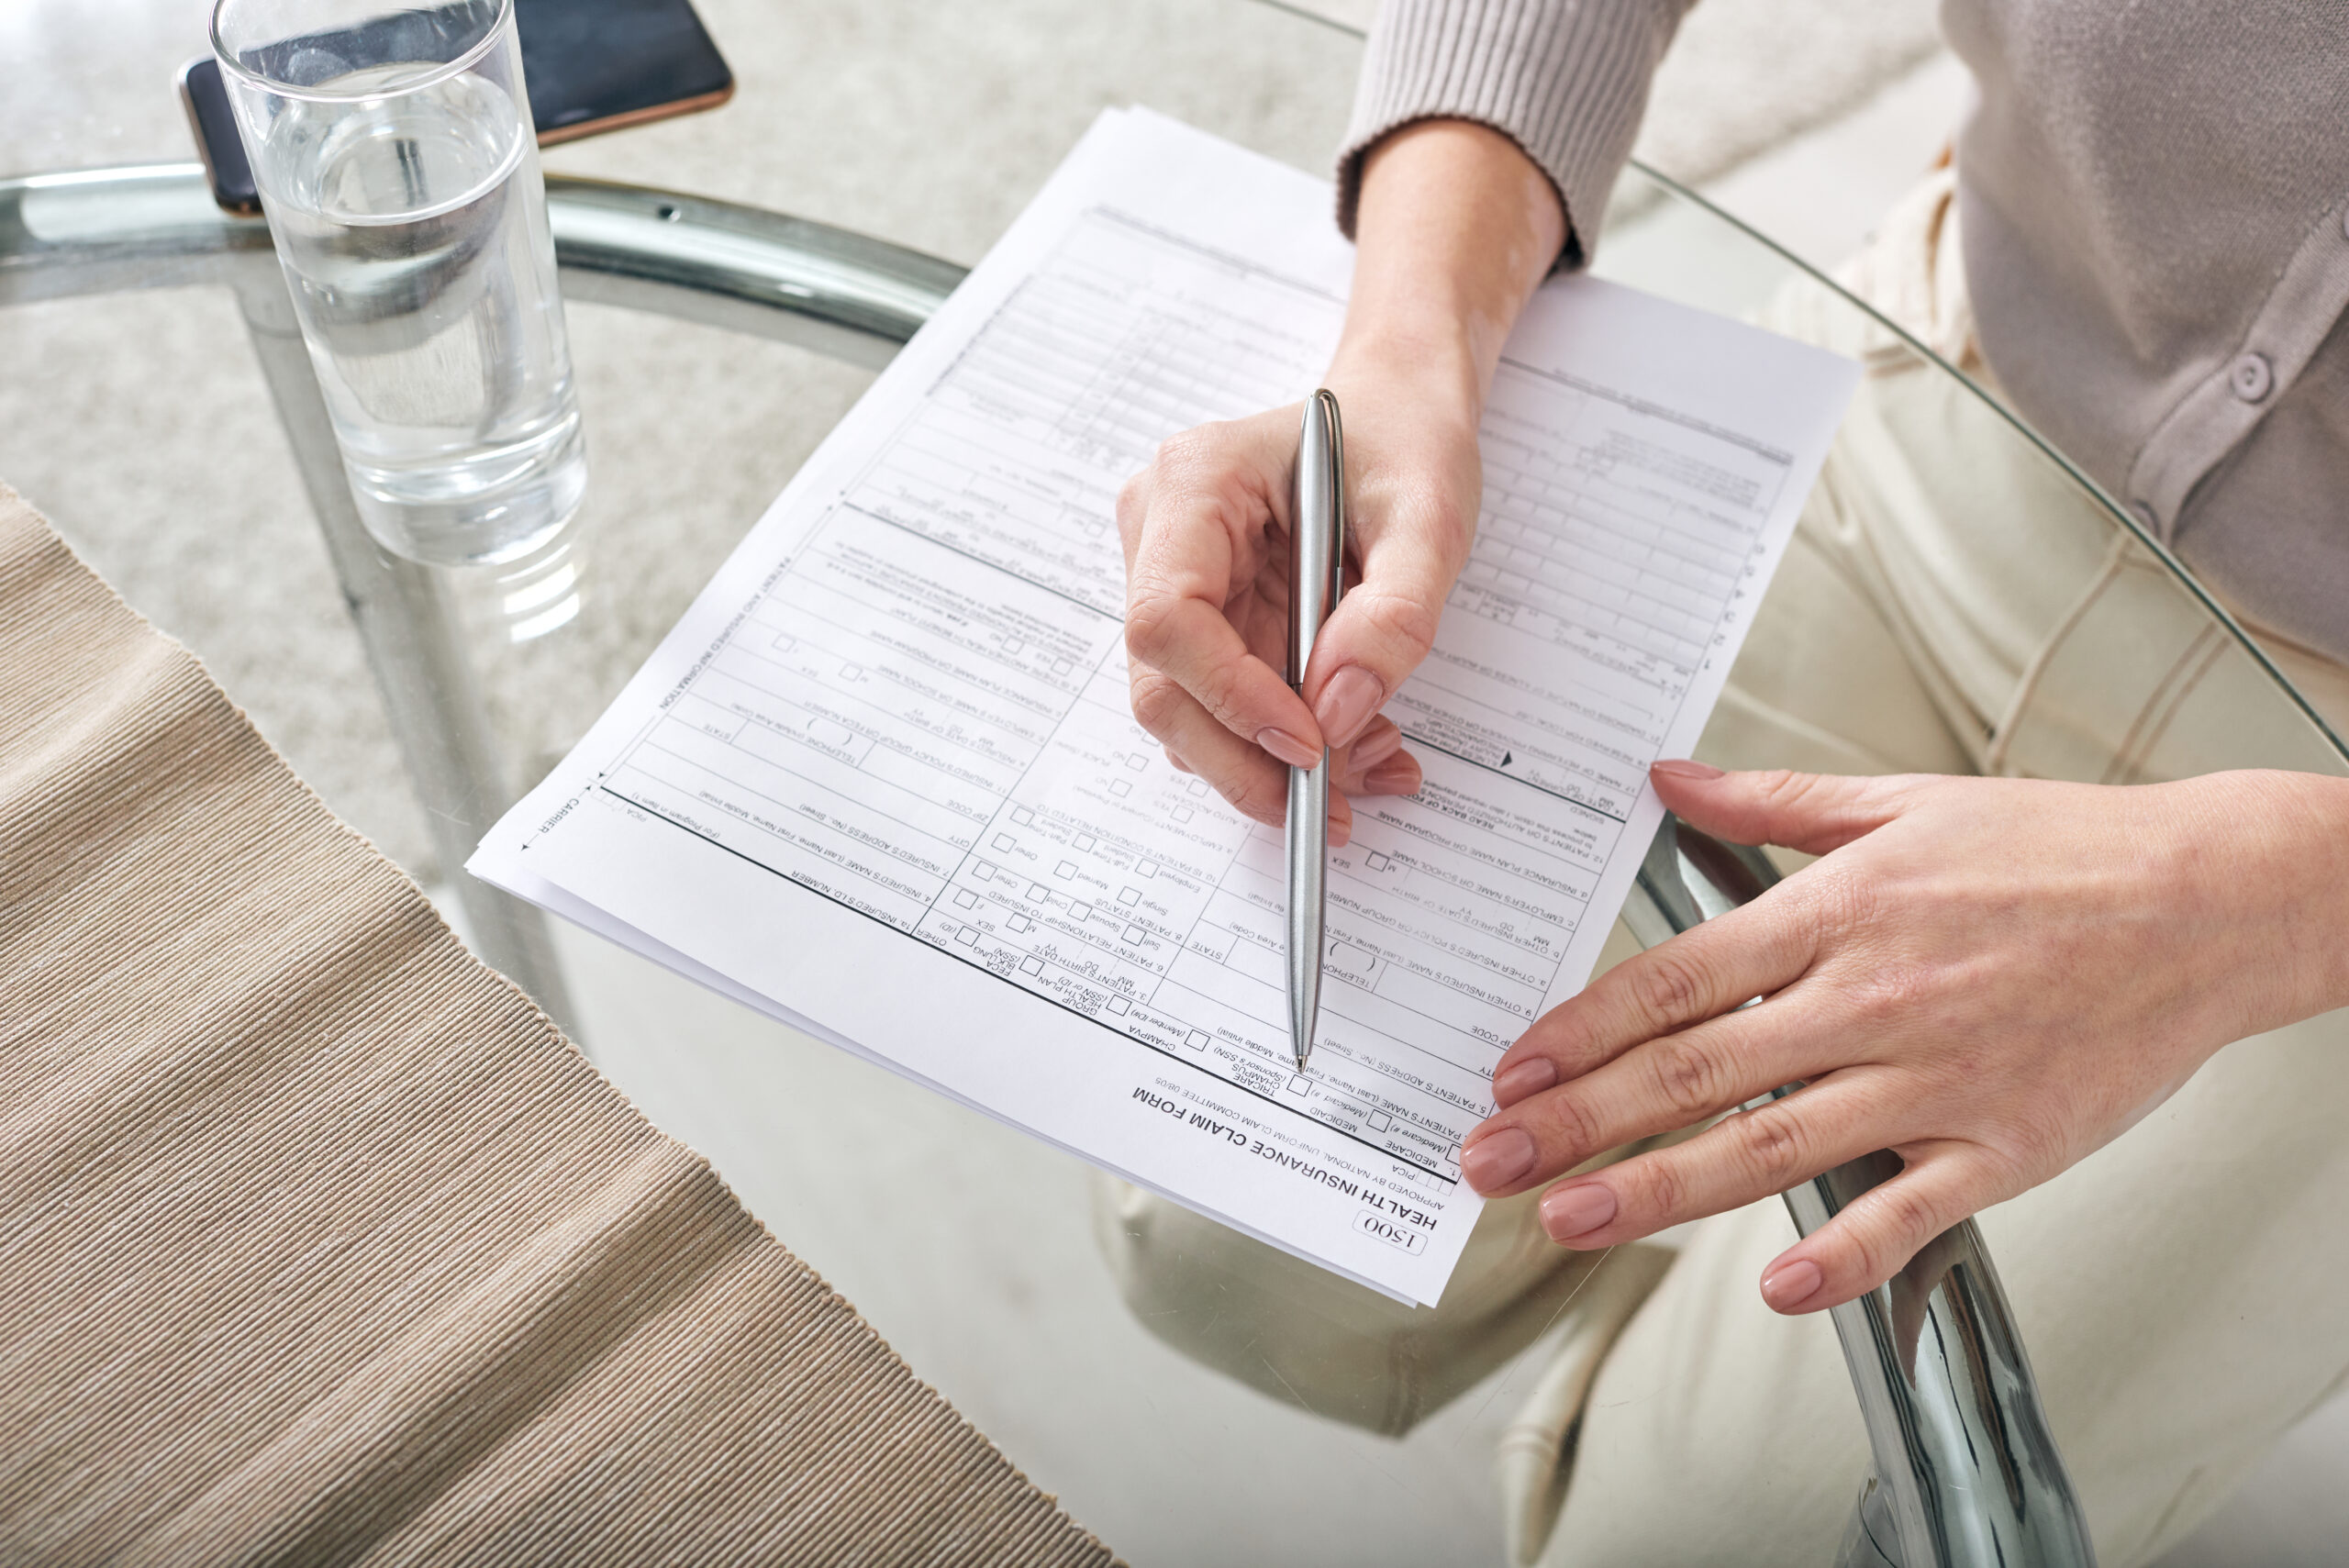 Insurance adjuster referring a client to REHAB AT WORK